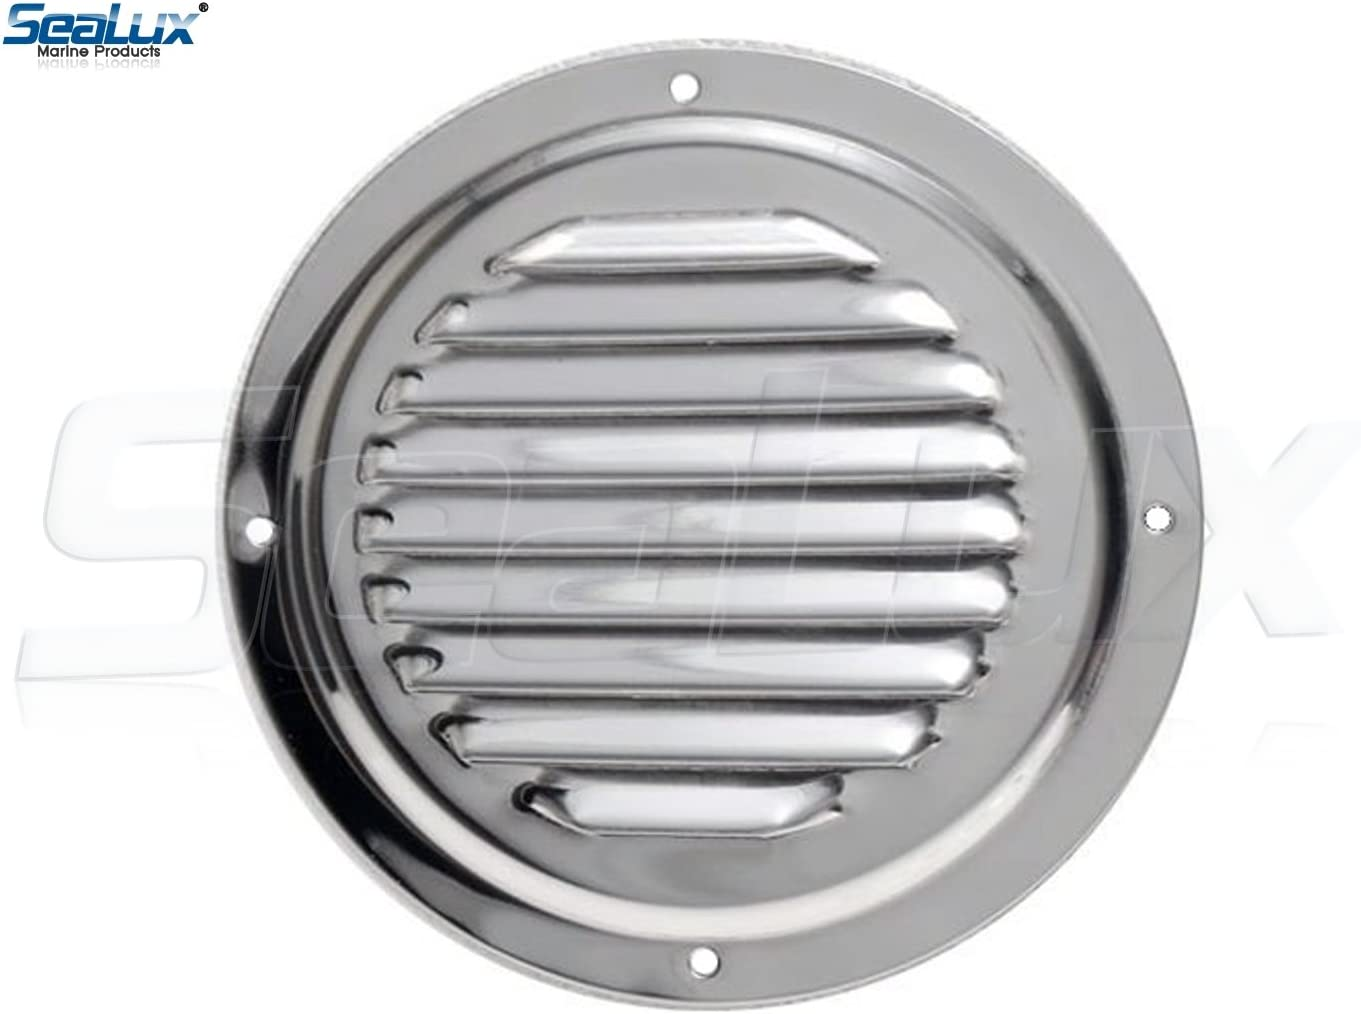 SeaLux Stainless Steel 4 Inch Marine Boat Engine Louvered Style Vent Cover